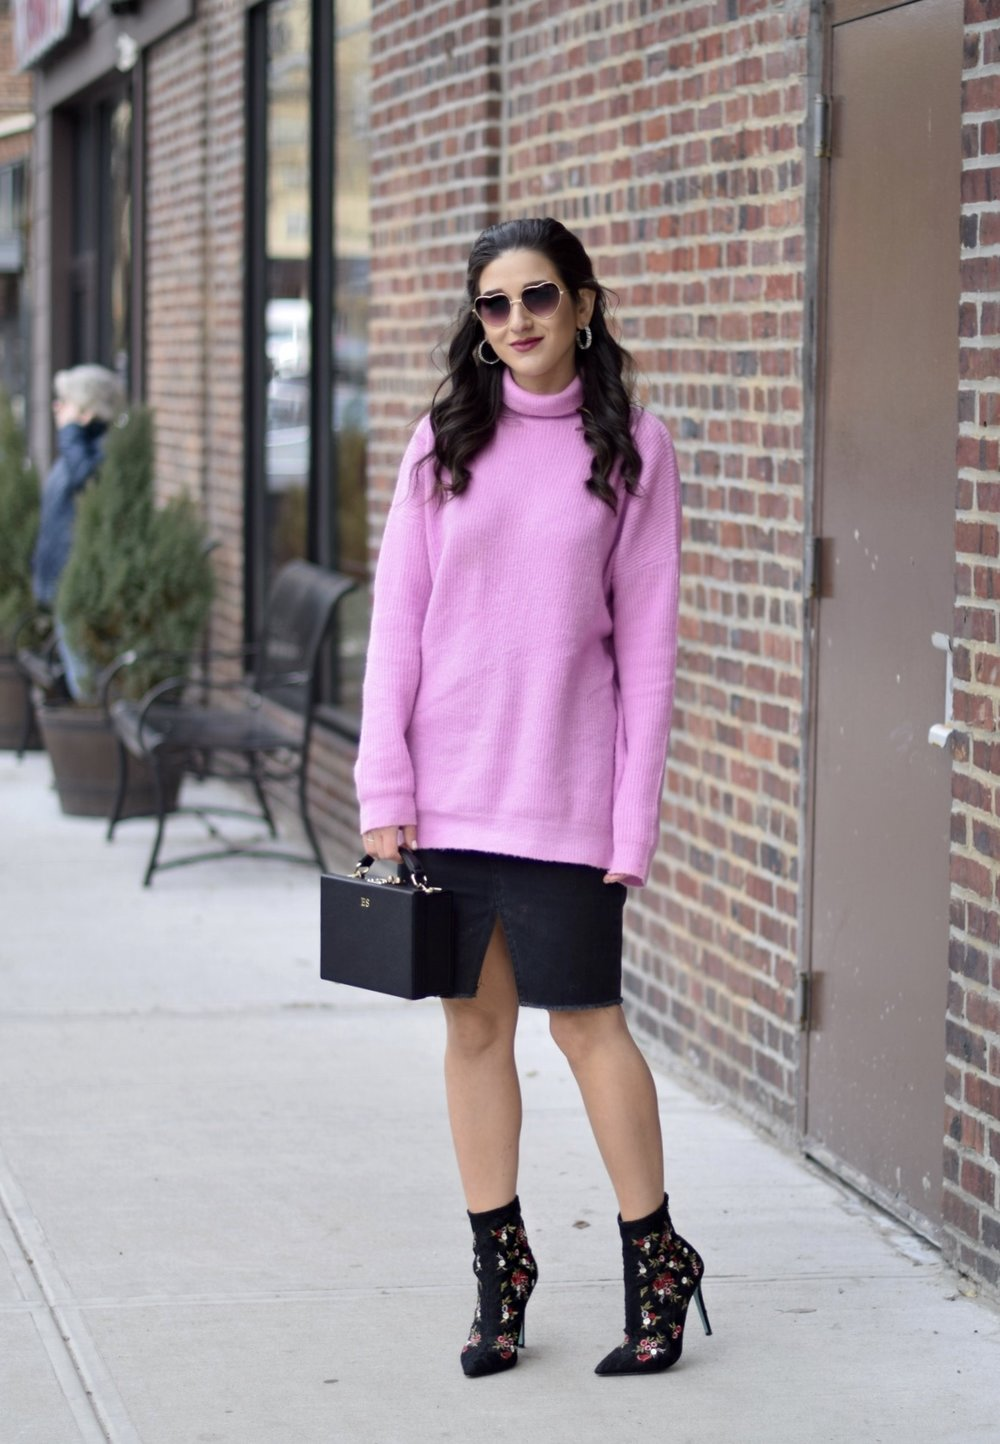 Surviving Winter With ASOS 5 Hardest Parts Of Blogging Esther Santer Fashion Blog NYC Street Style Blogger Outfit OOTD Trendy Pink Sweater Black Denim Skirt Box Bag Floral Booties Betsey Johnson Girl Women Purse Heart Sunglasses Booties Accesories .jpg